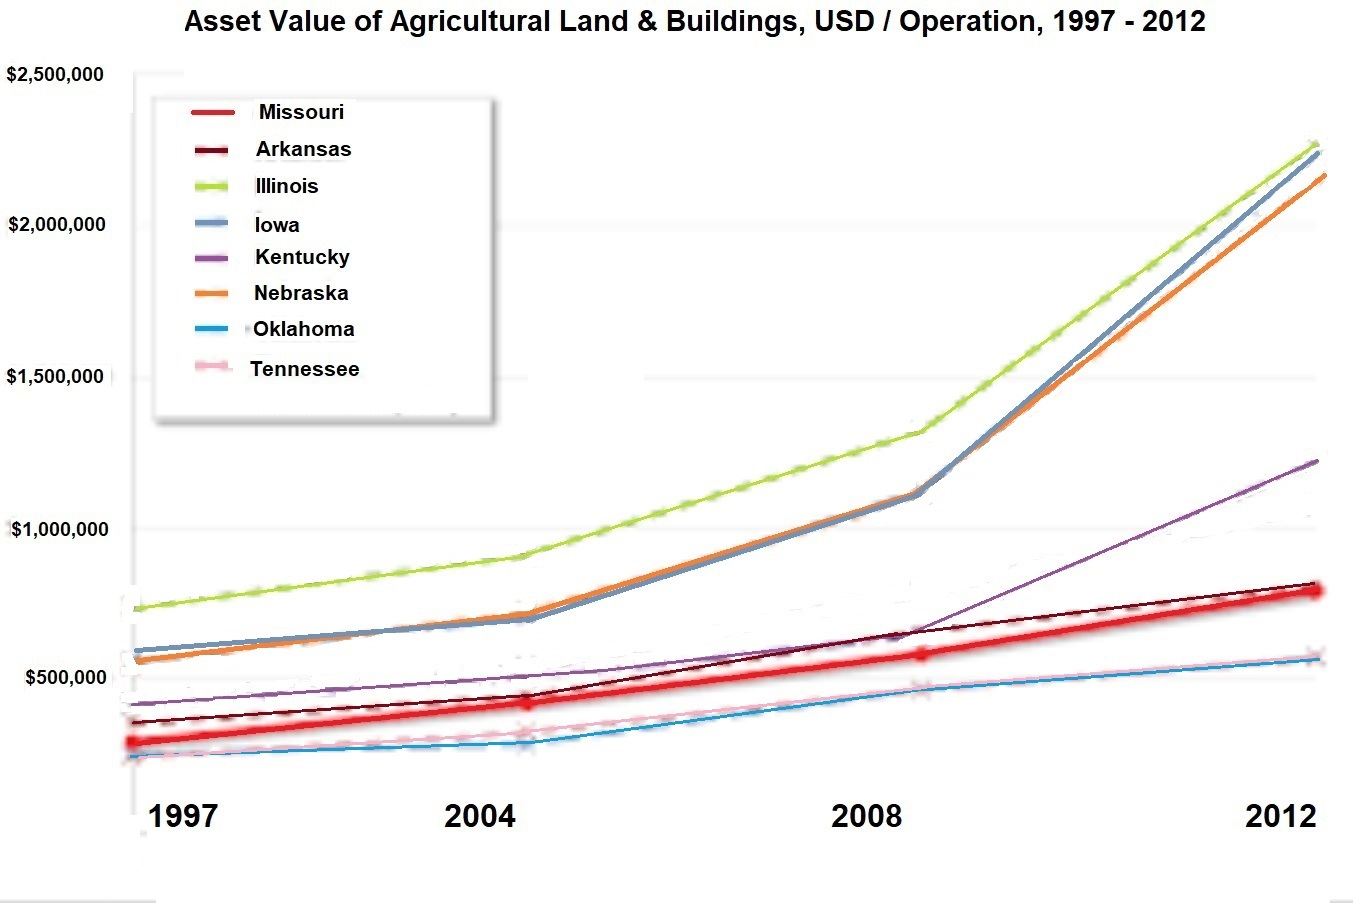 Asset Value of Agricultural Land & Buildings